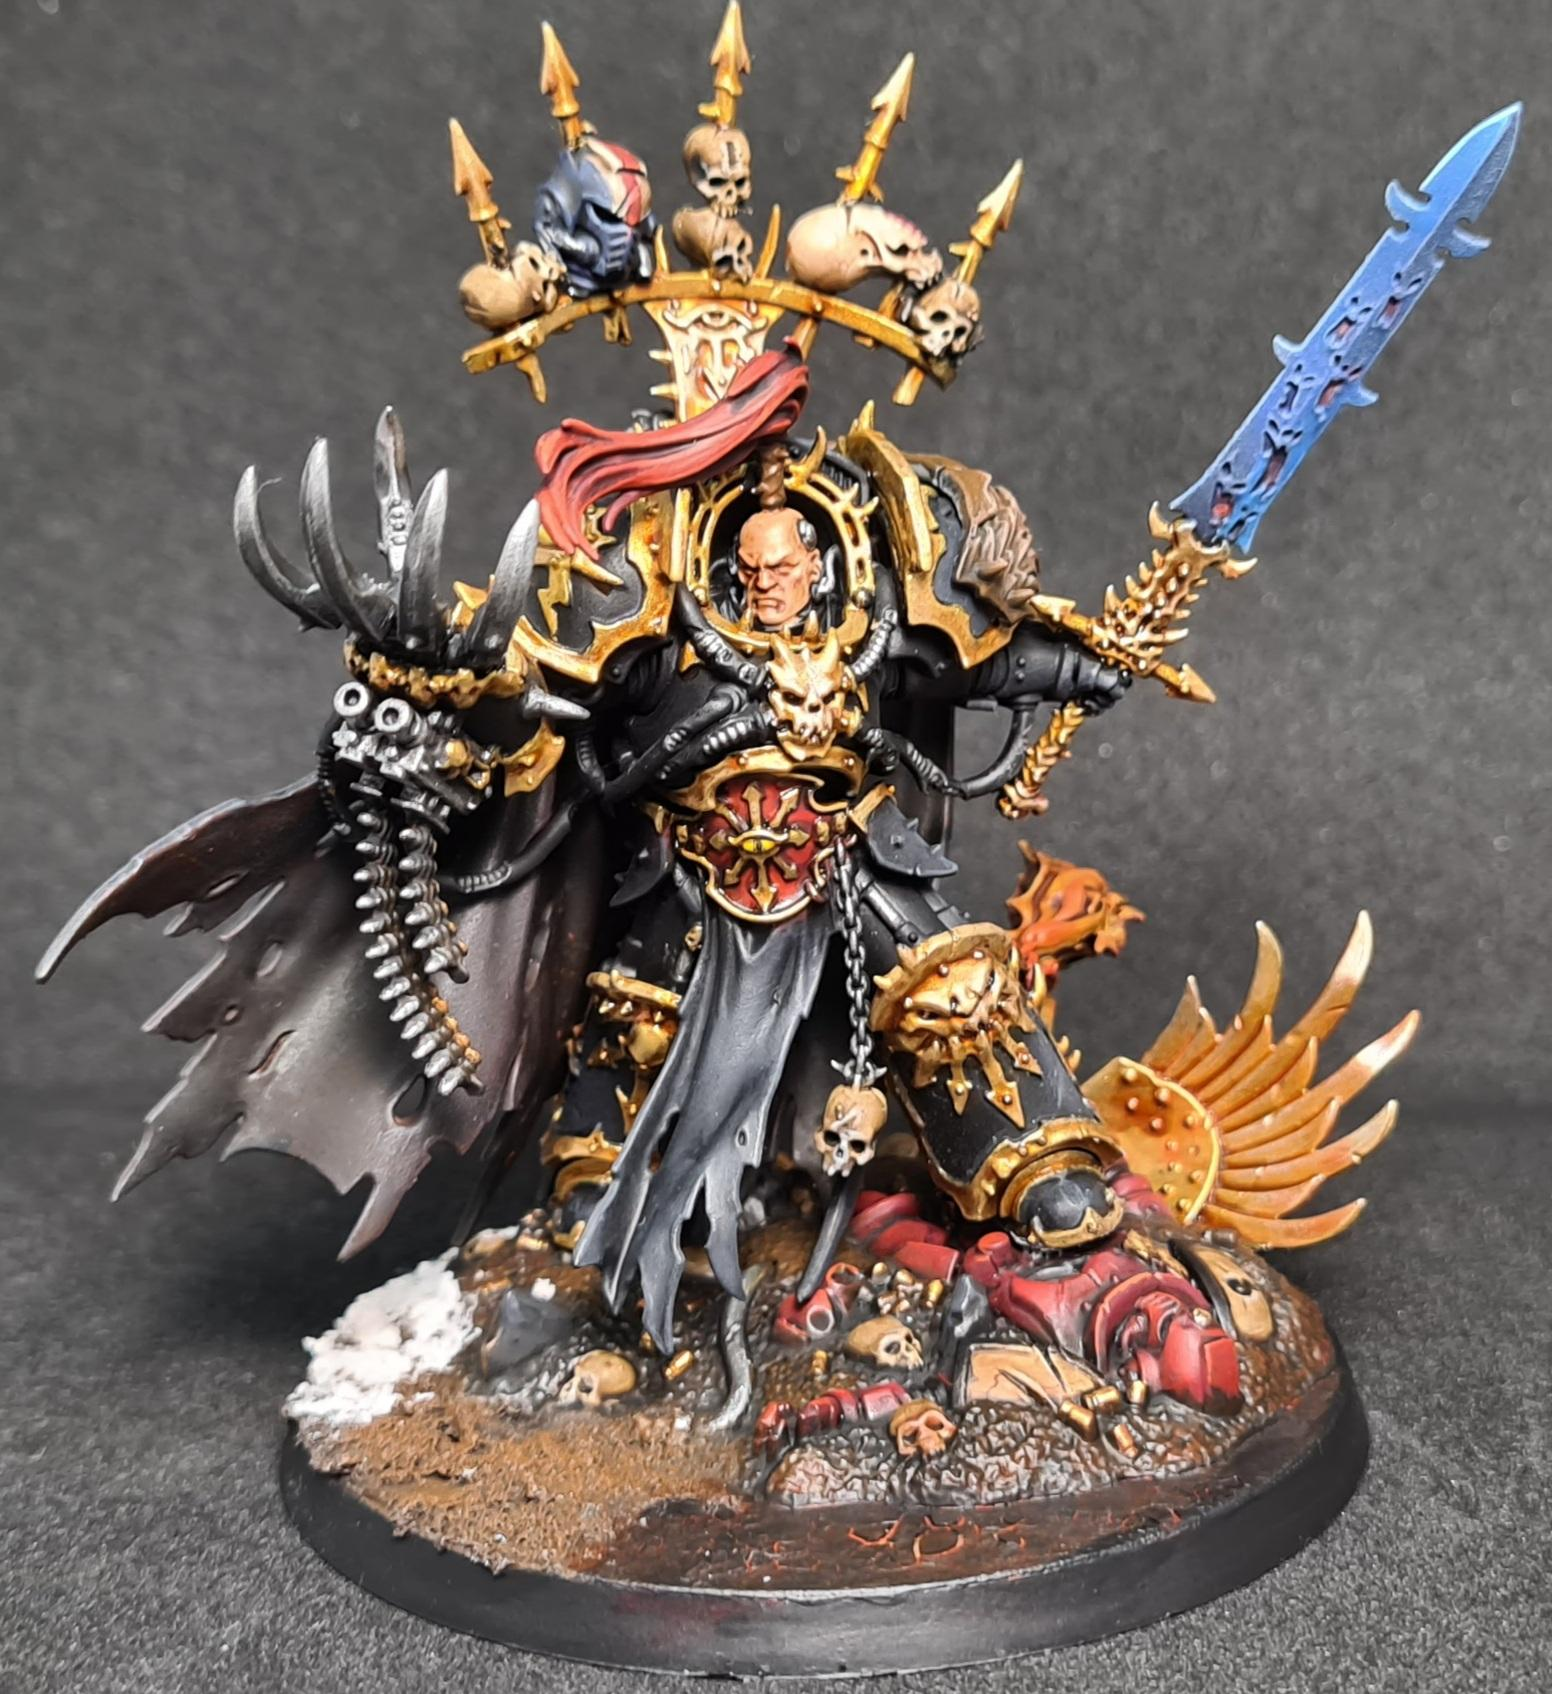 Abaddon, Abaddon The Despoiler, Black Legion, Chaos, Chaos Space Marines, Deadshot, Heretic Astartes, Warmaster